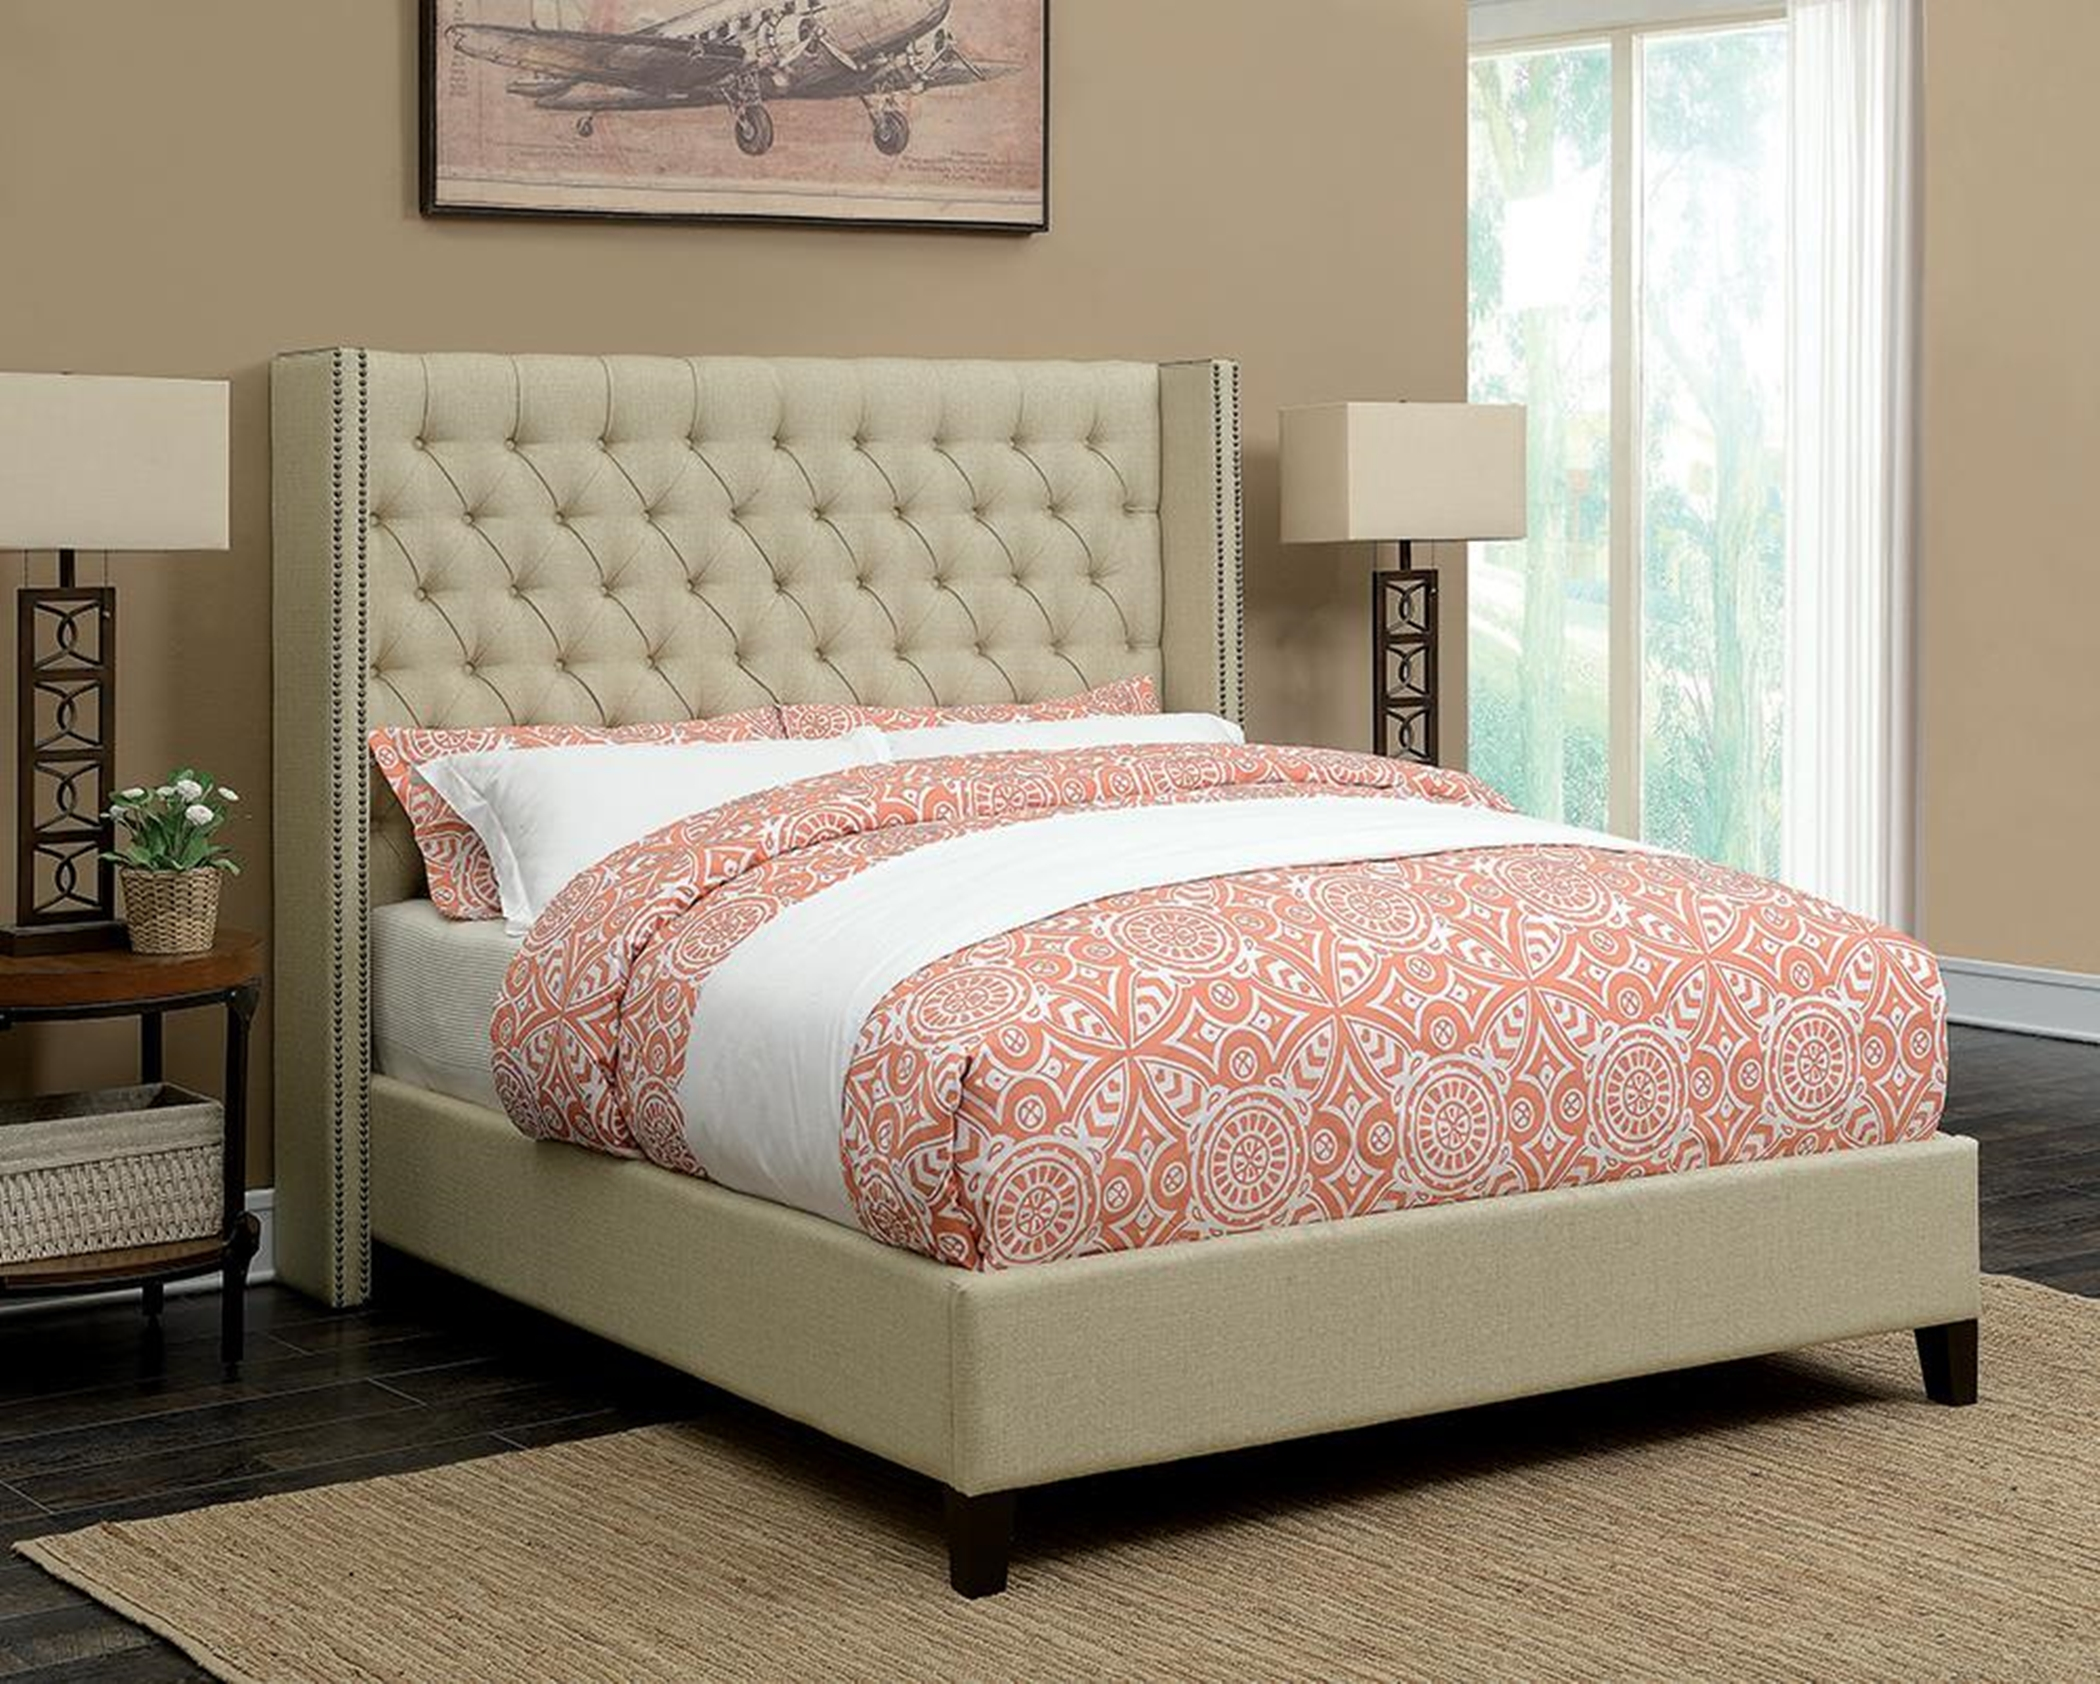 Benicia Beige Upholstered Full Bed